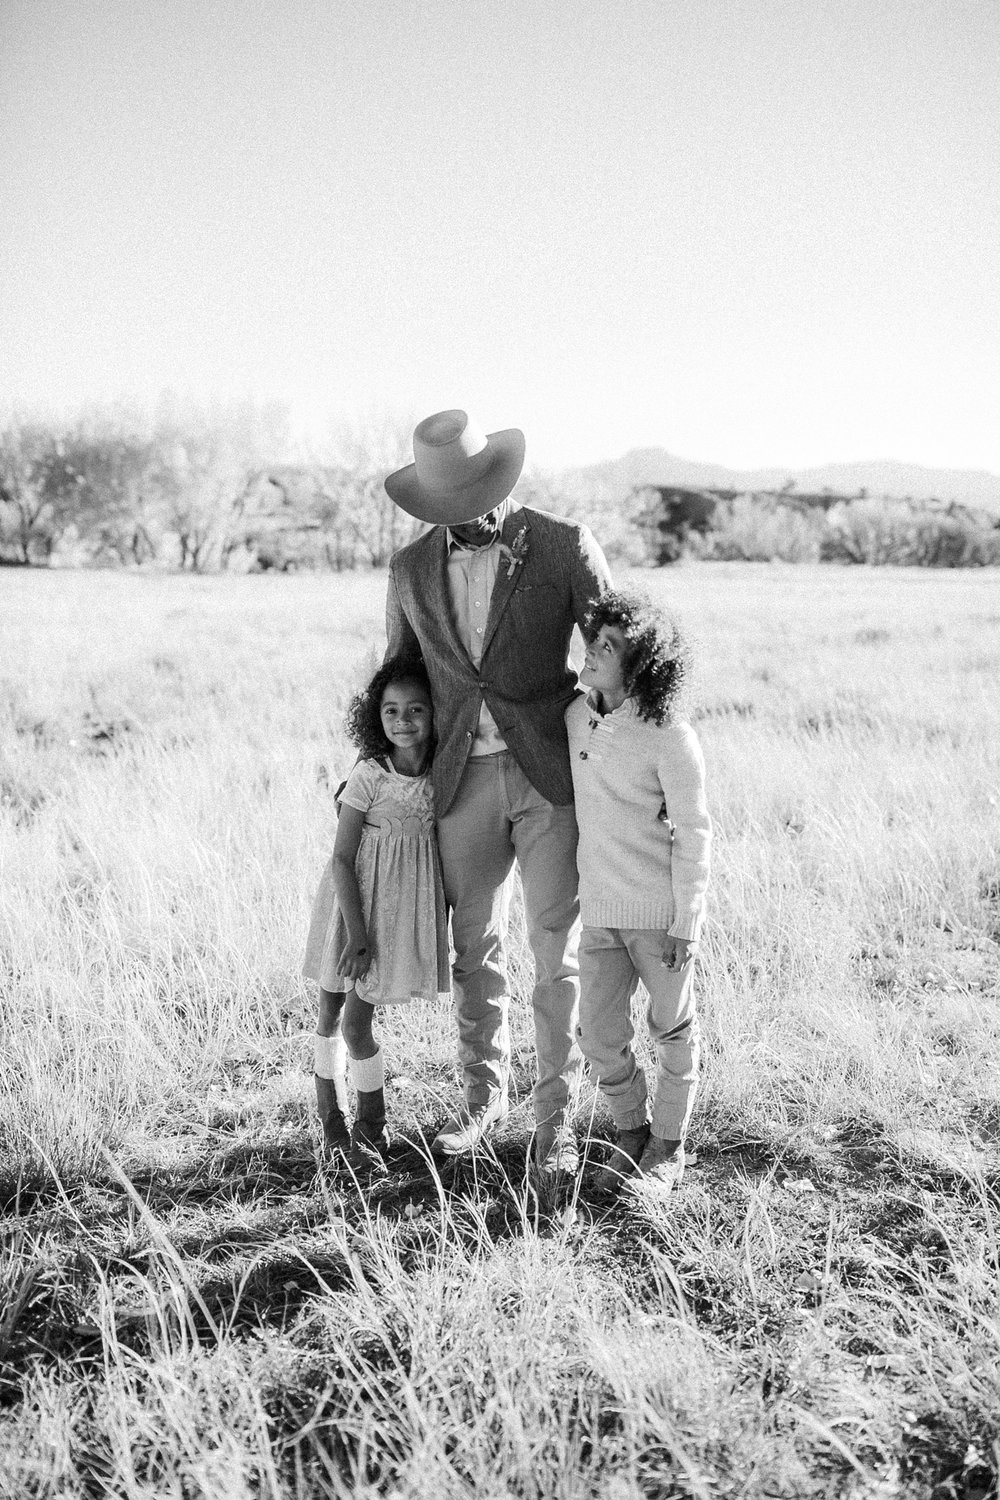 Alicia+lucia+photography+-+albuquerque+wedding+photographer+-+santa+fe+wedding+photography+-+new+mexico+wedding+photographer+-+new+mexico+ghost+ranch+wedding+-+styled+wedding+shoot_0017.jpg